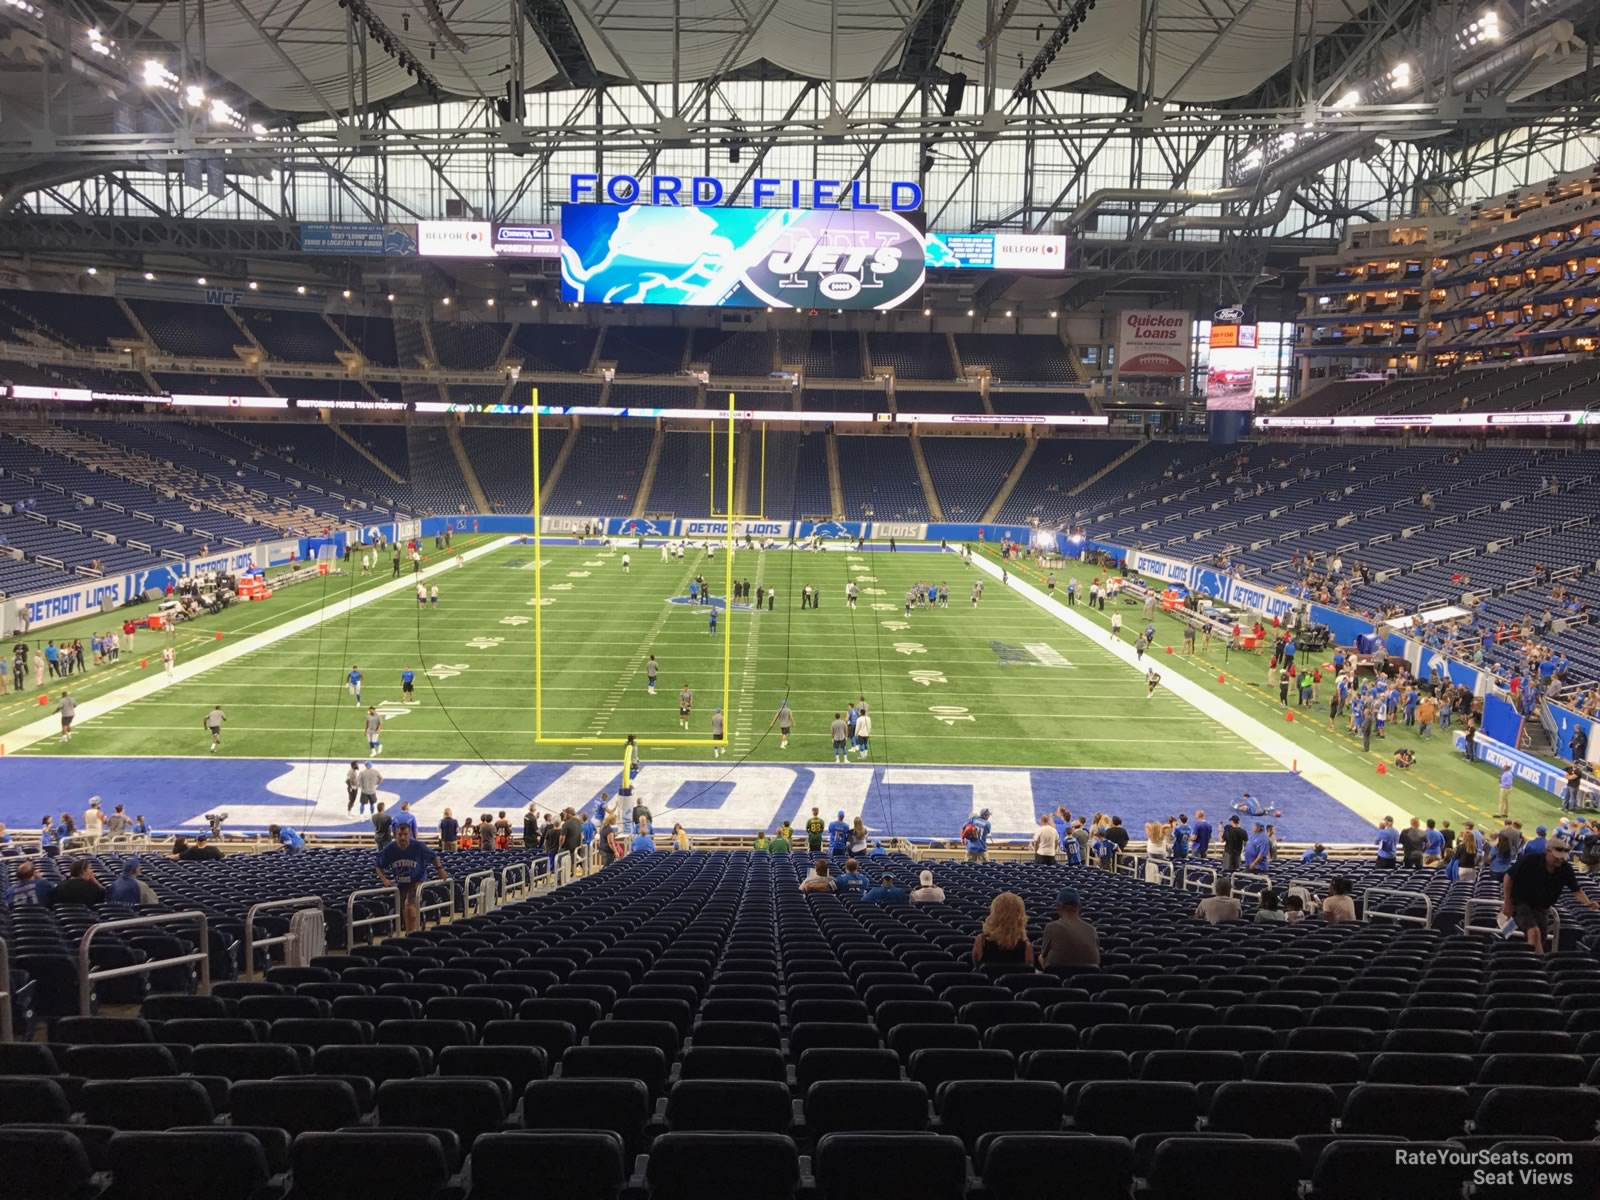 Section 138 seat view